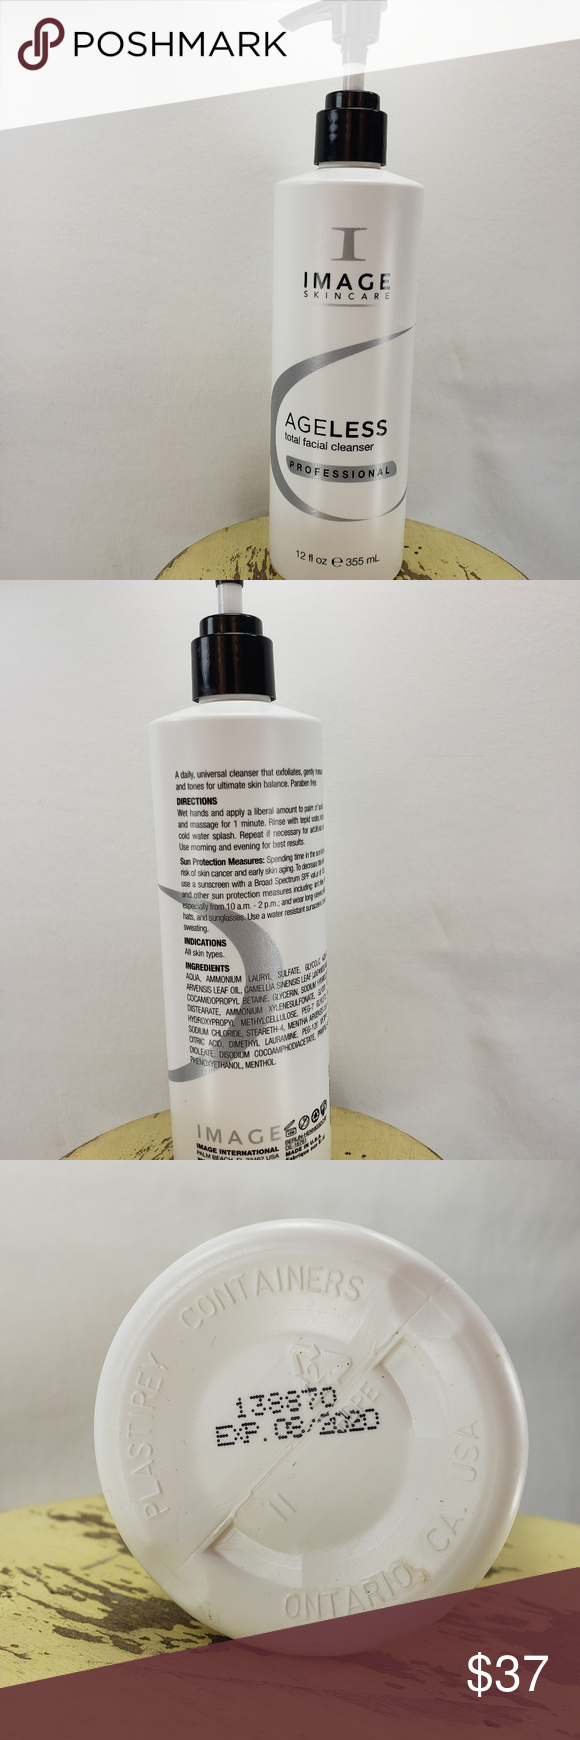 Image Skincare Ageless Total Facial Cleanser 12 Oz Boutique In 2018